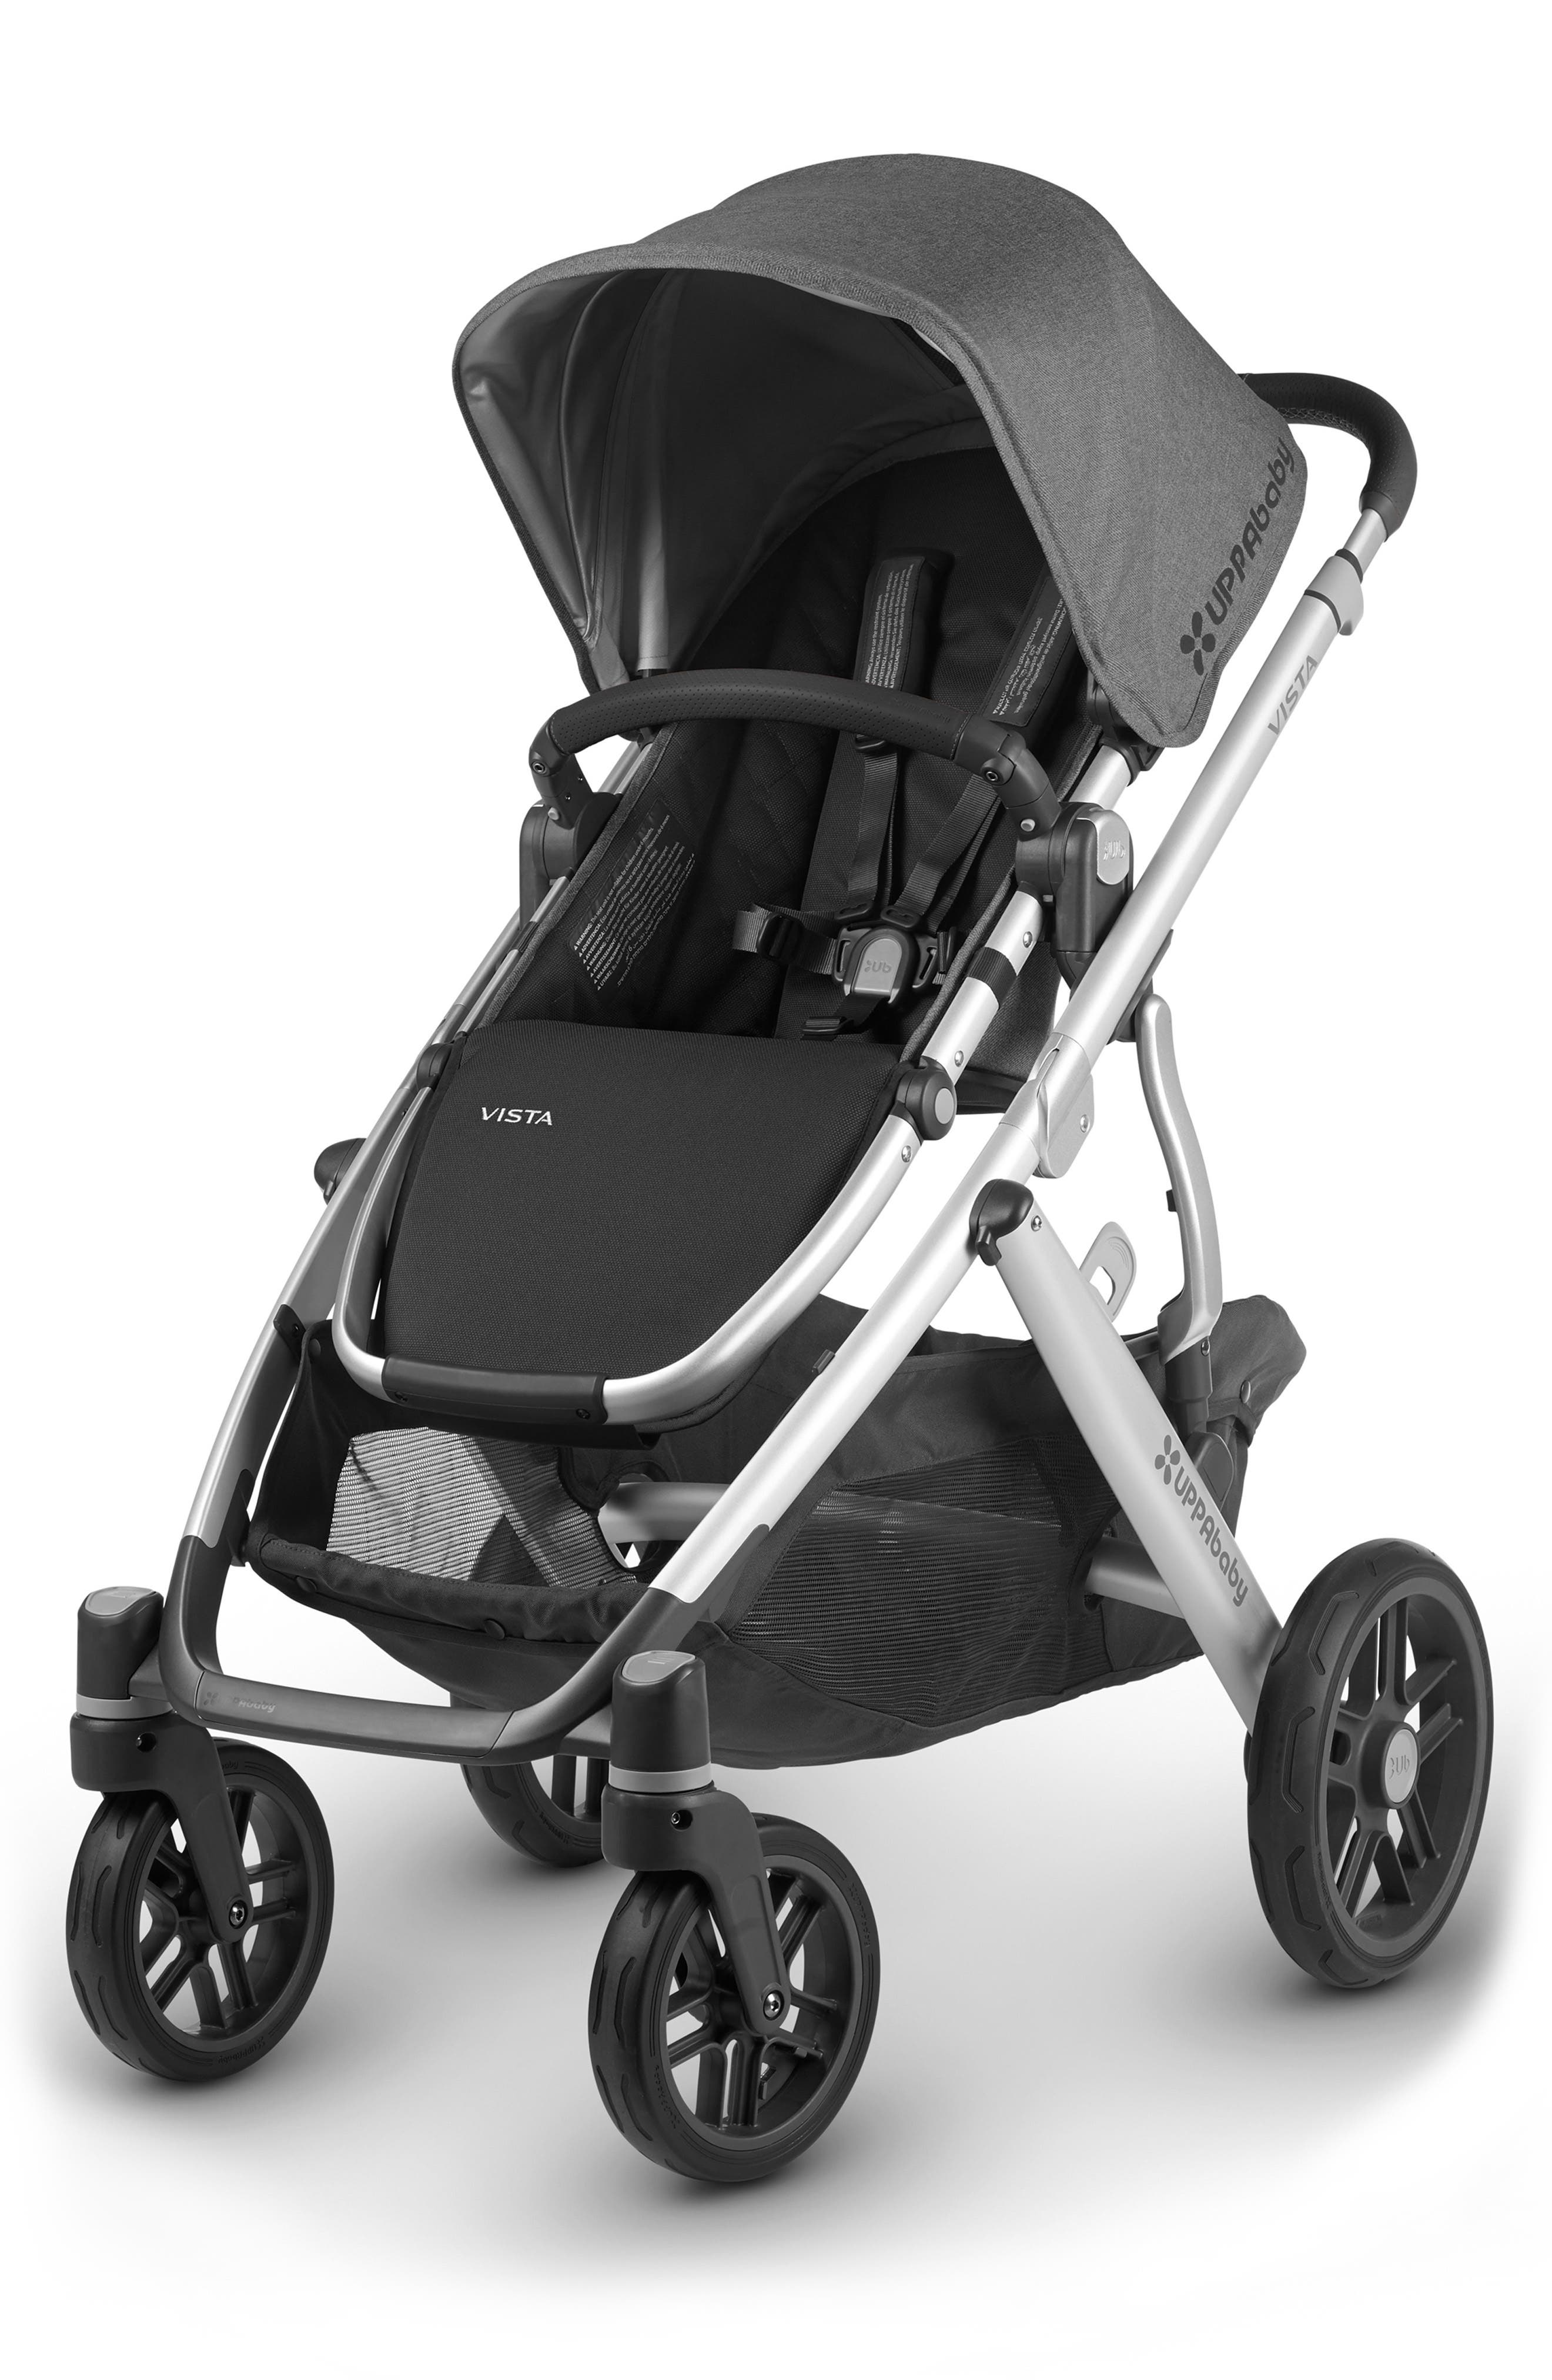 UPPABABY, 2018 VISTA Aluminum Frame Convertible Complete Stroller with Leather Trim, Alternate thumbnail 5, color, JORDAN CHARCOAL/ SILVER